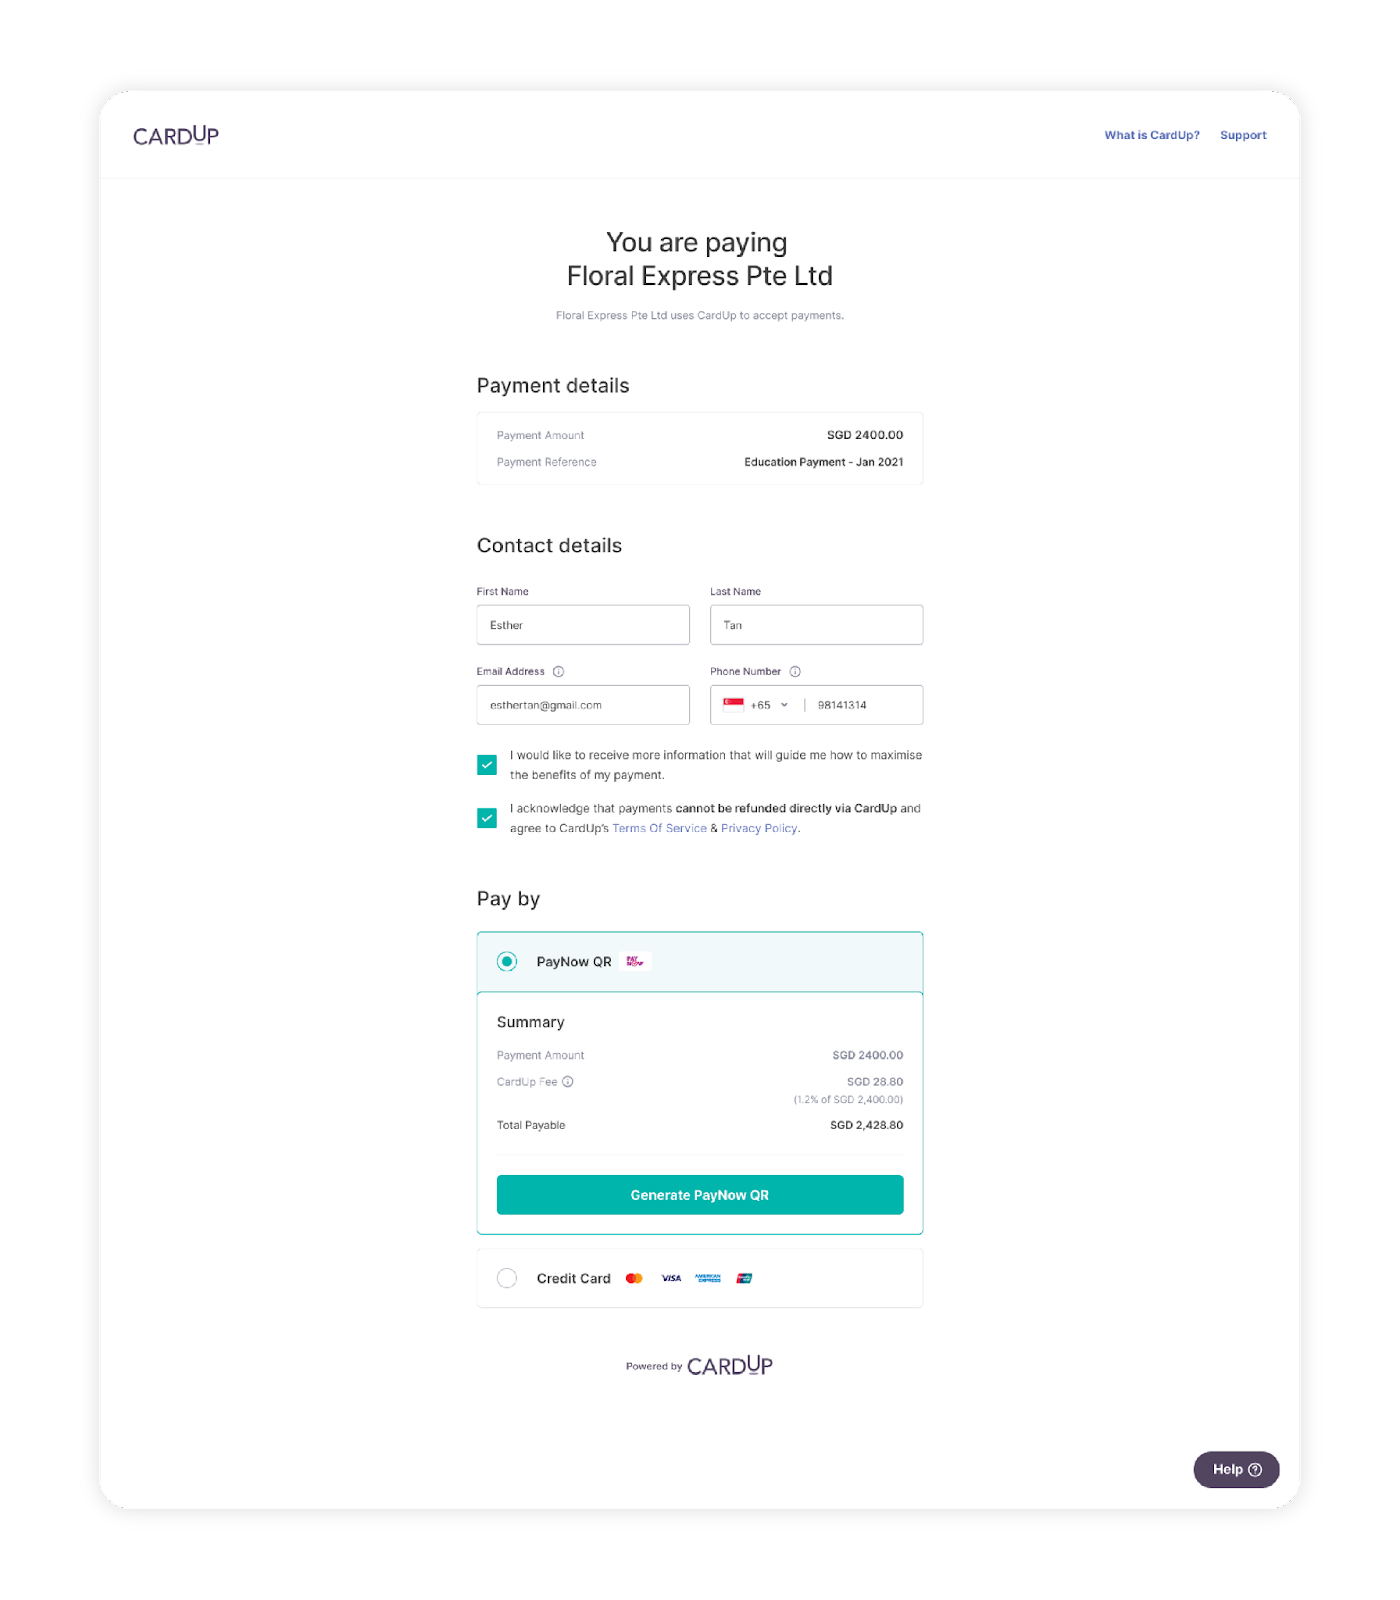 Get paid faster with CardUp